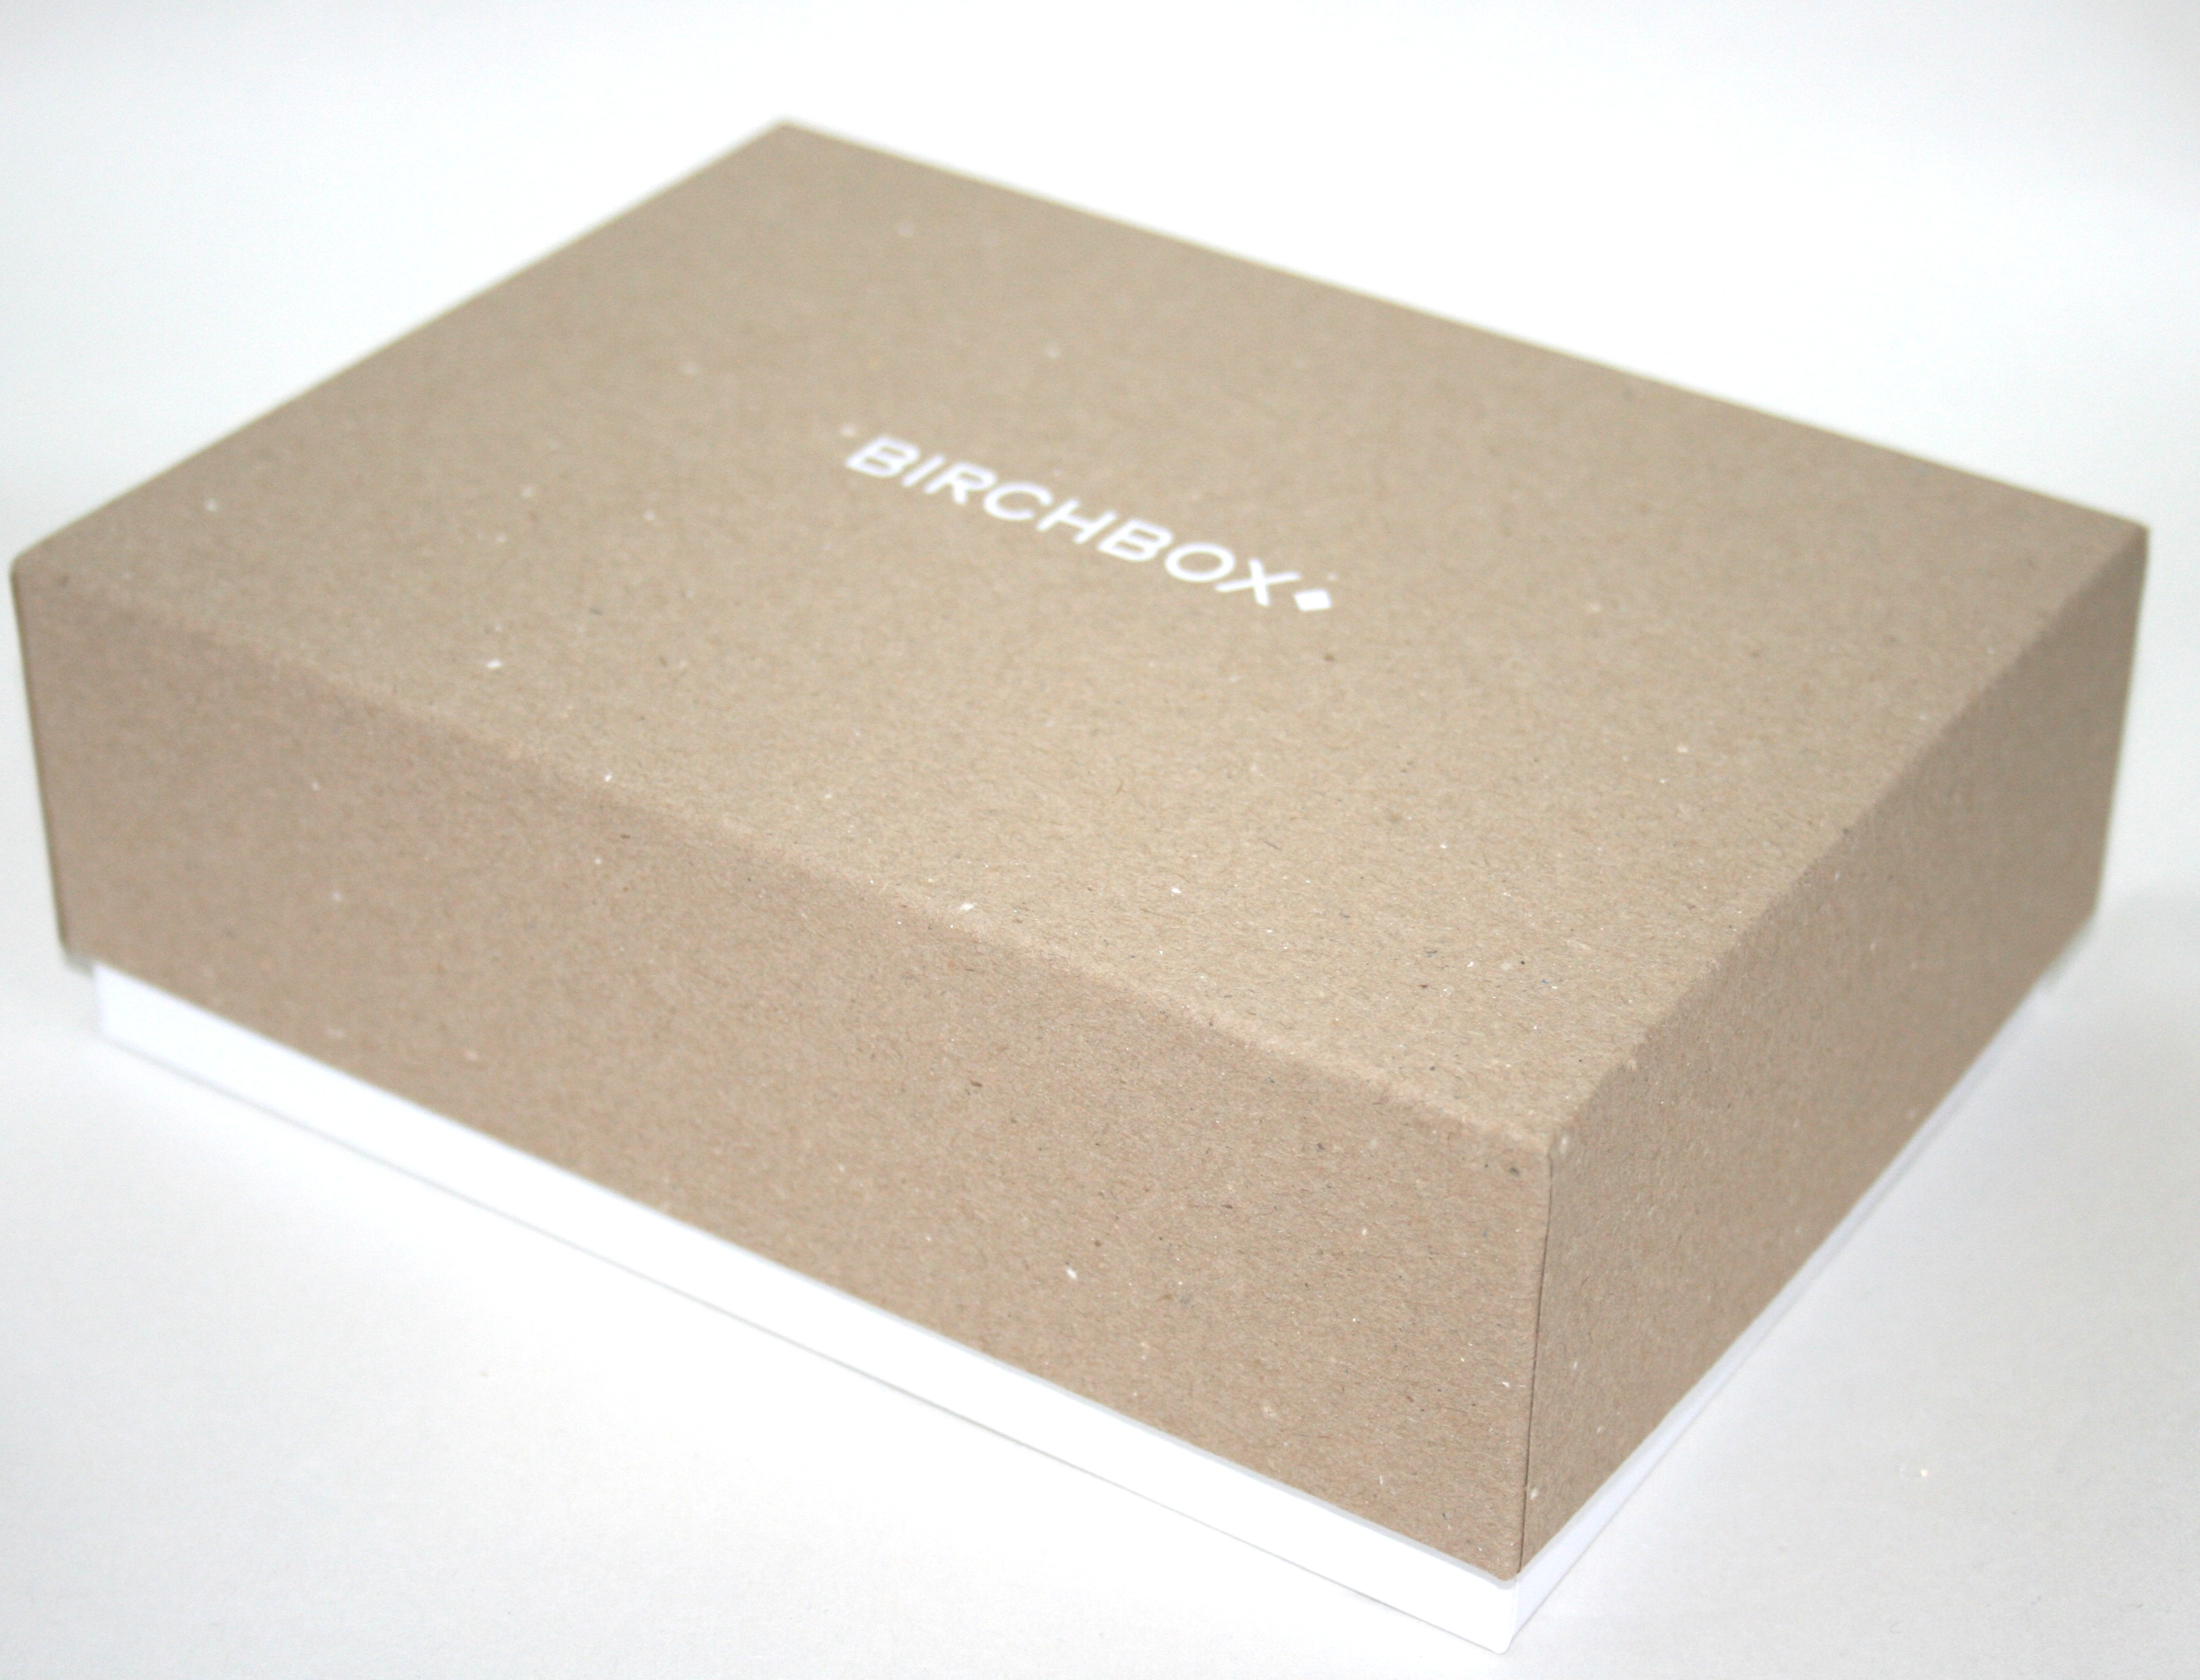 Birchbox June 2014 and Reader Offer